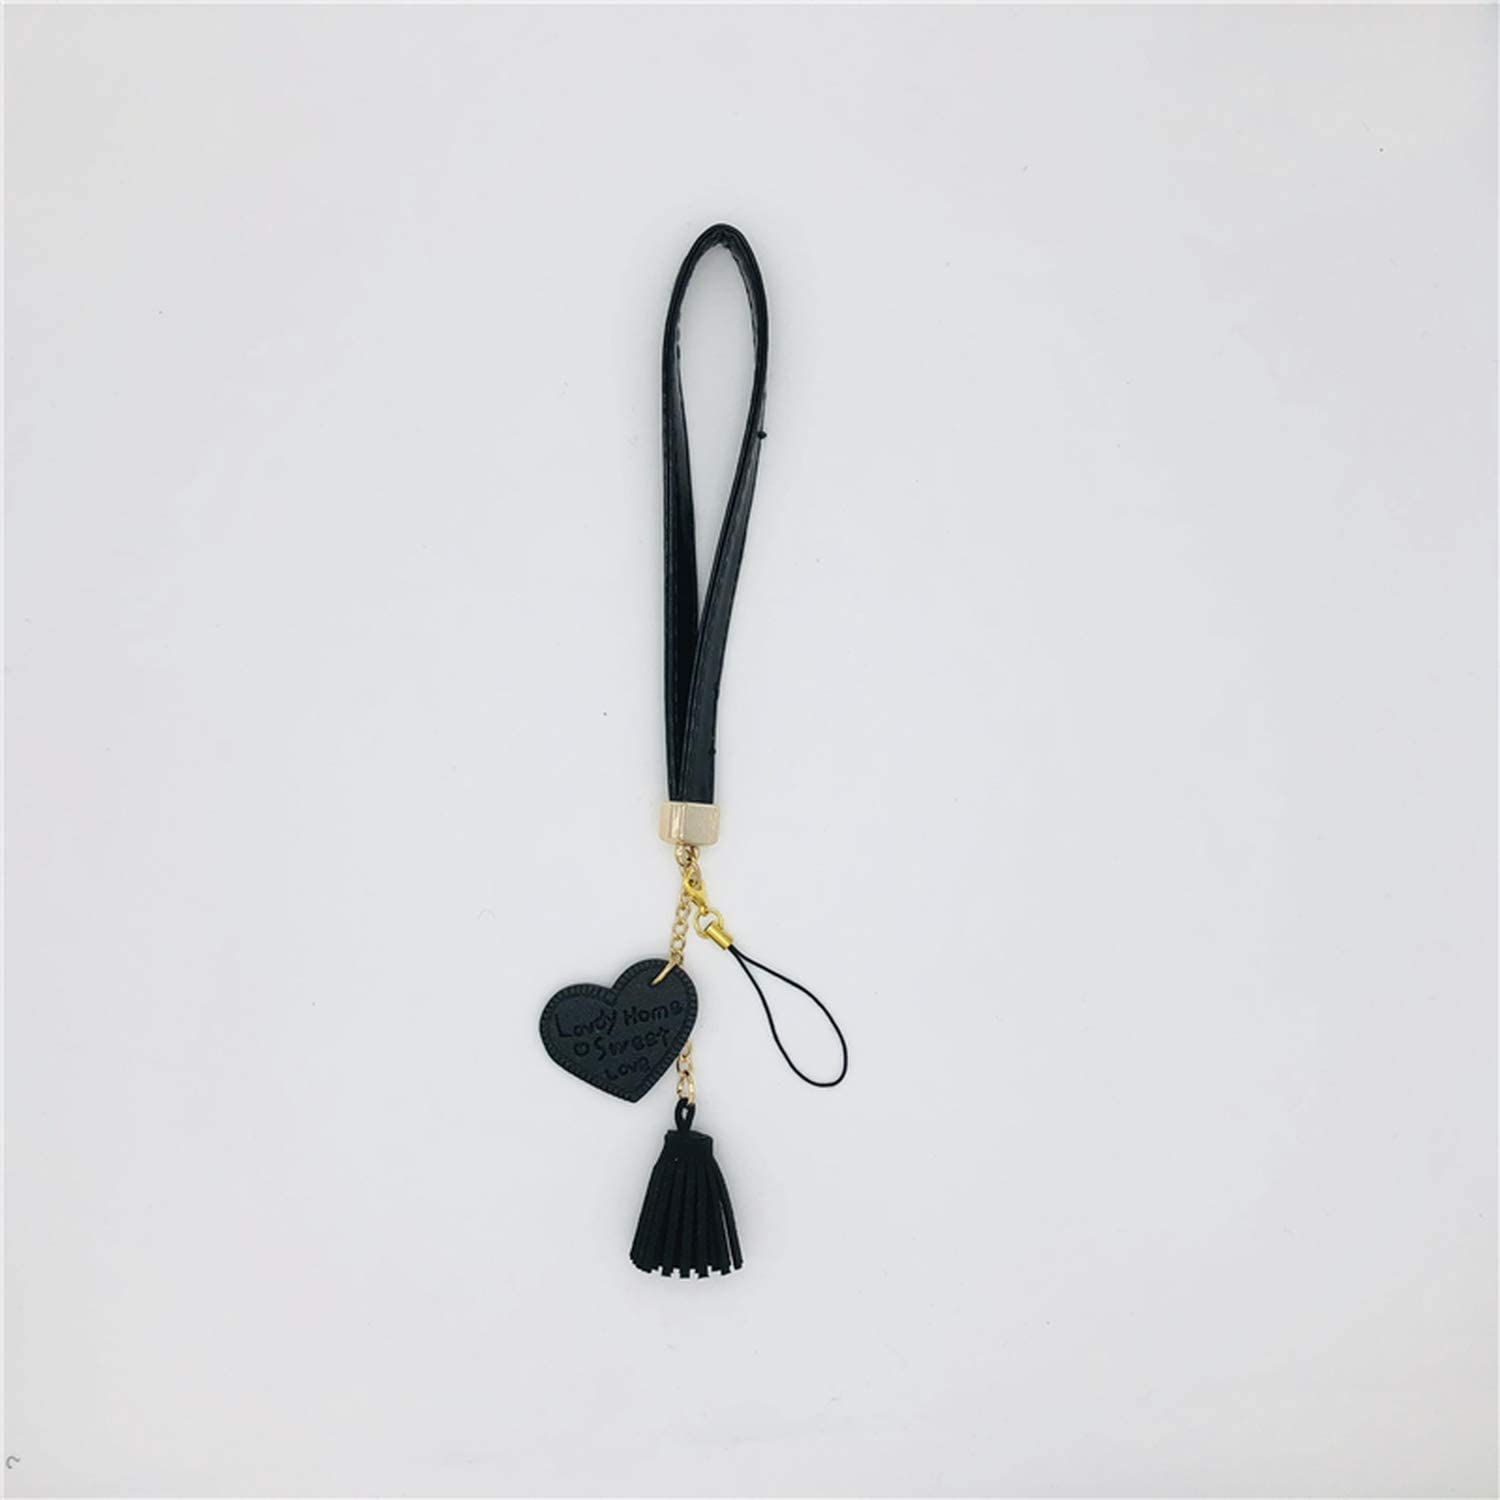 Tassel Pop Lanyard Mobile Phone Pendant Pu Leather Love Camera Strap for Decor Keys Accessories,White